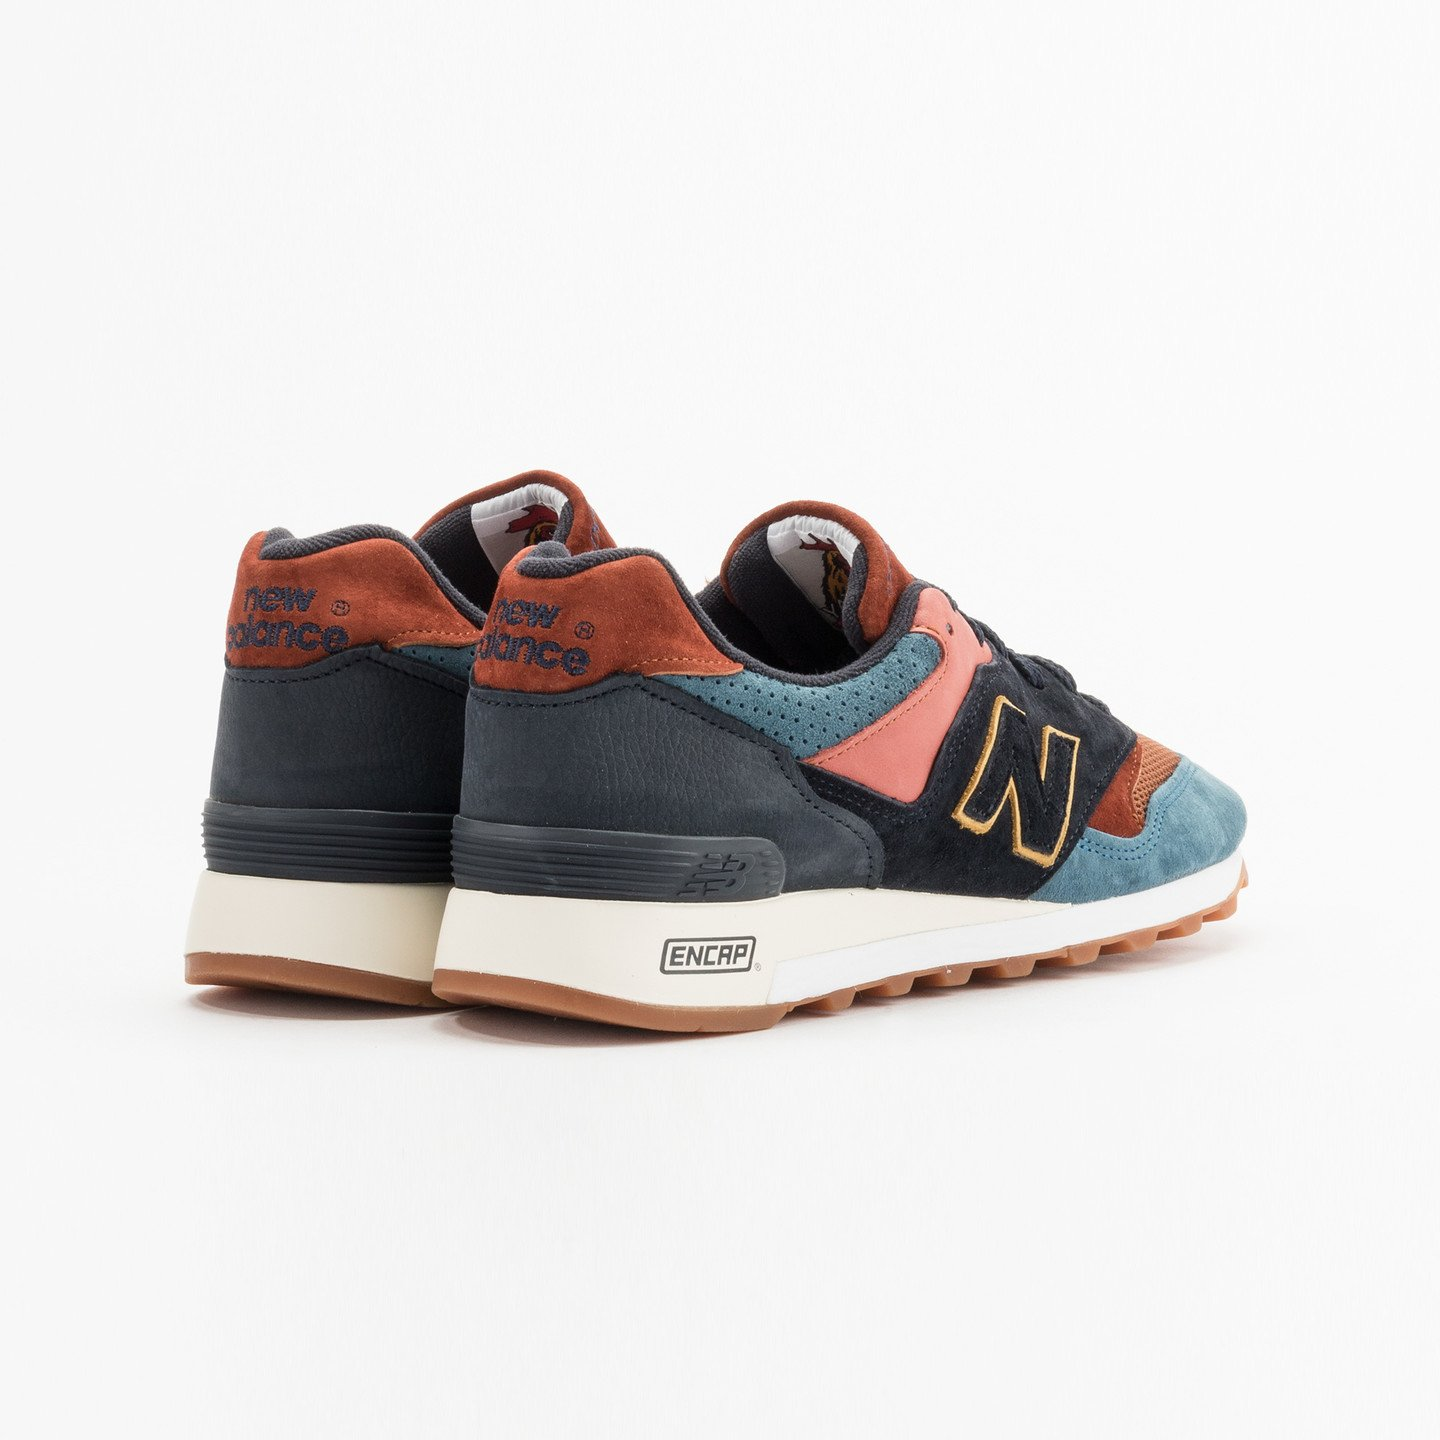 New Balance M577 YP Made in UK 'Yard Pack' Multicolor M577YP-43